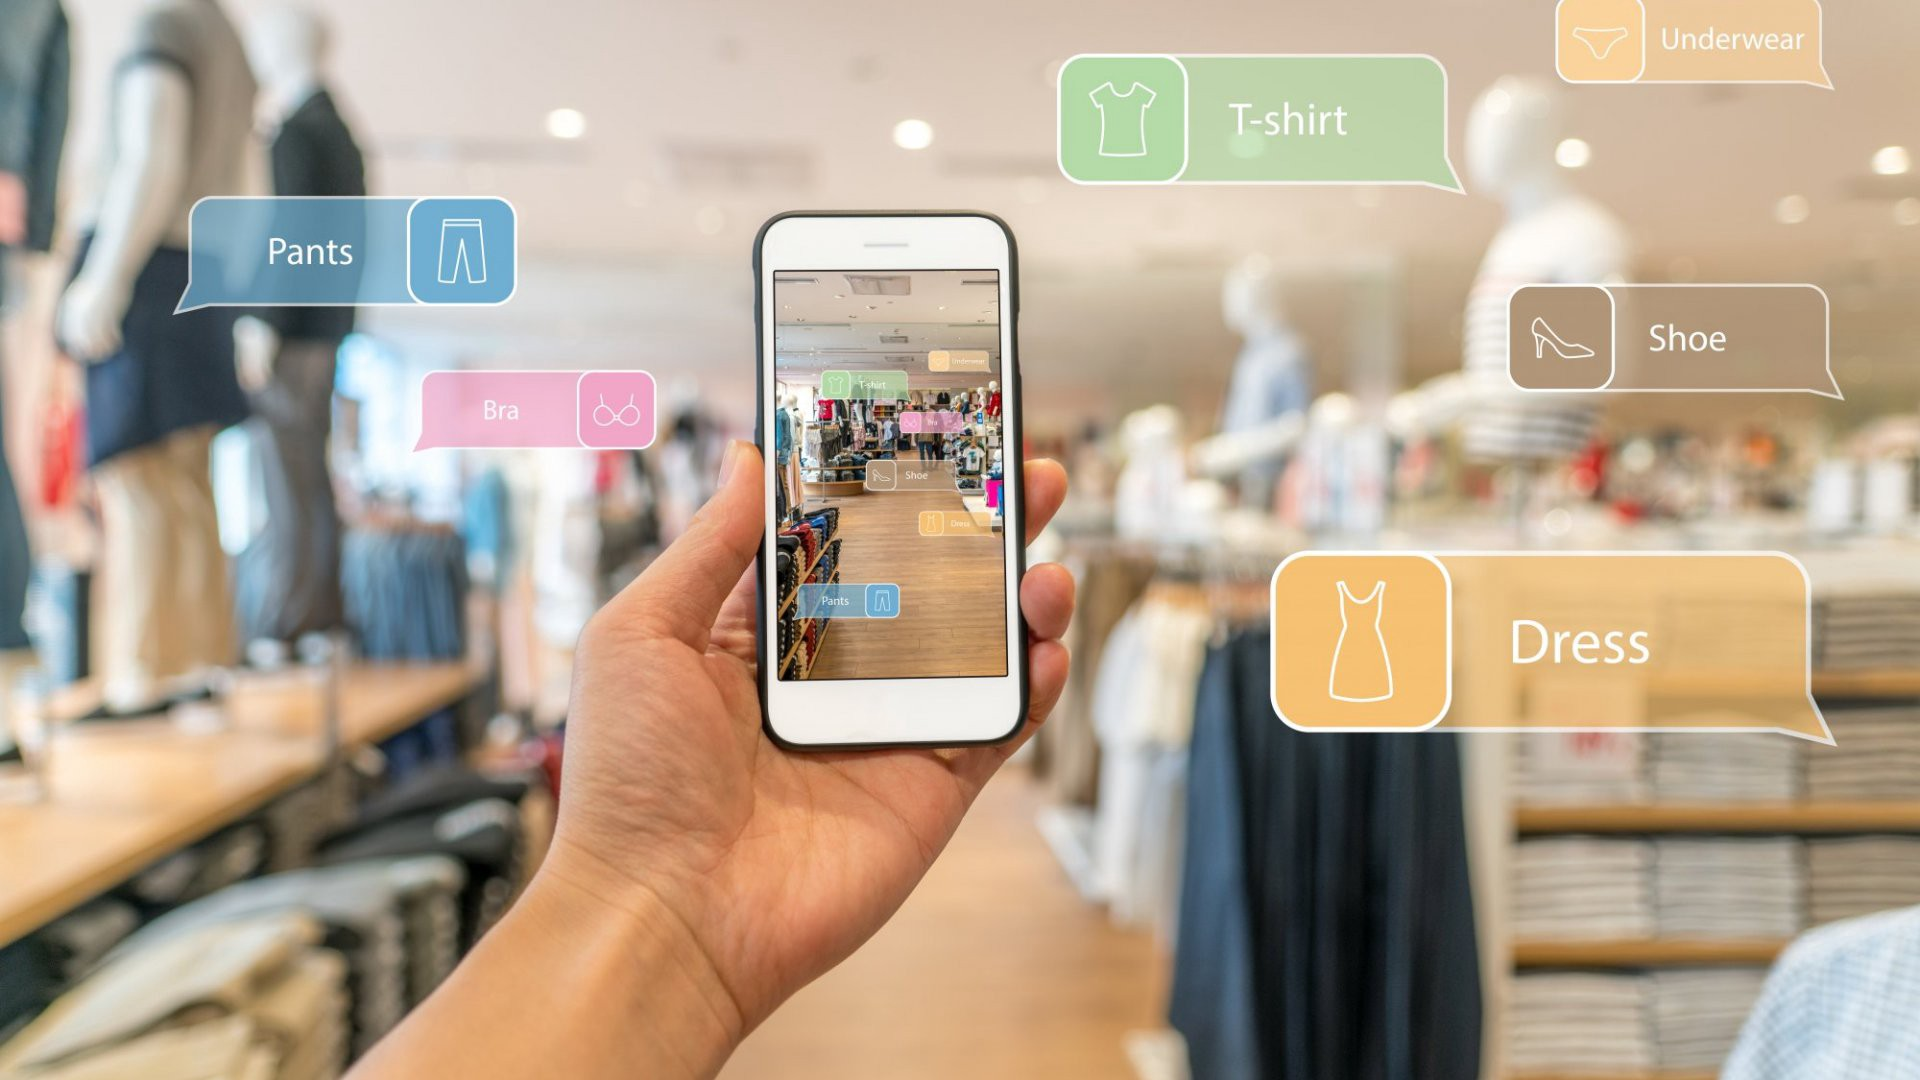 A person holding a smartphone using Augmented reallity in a store